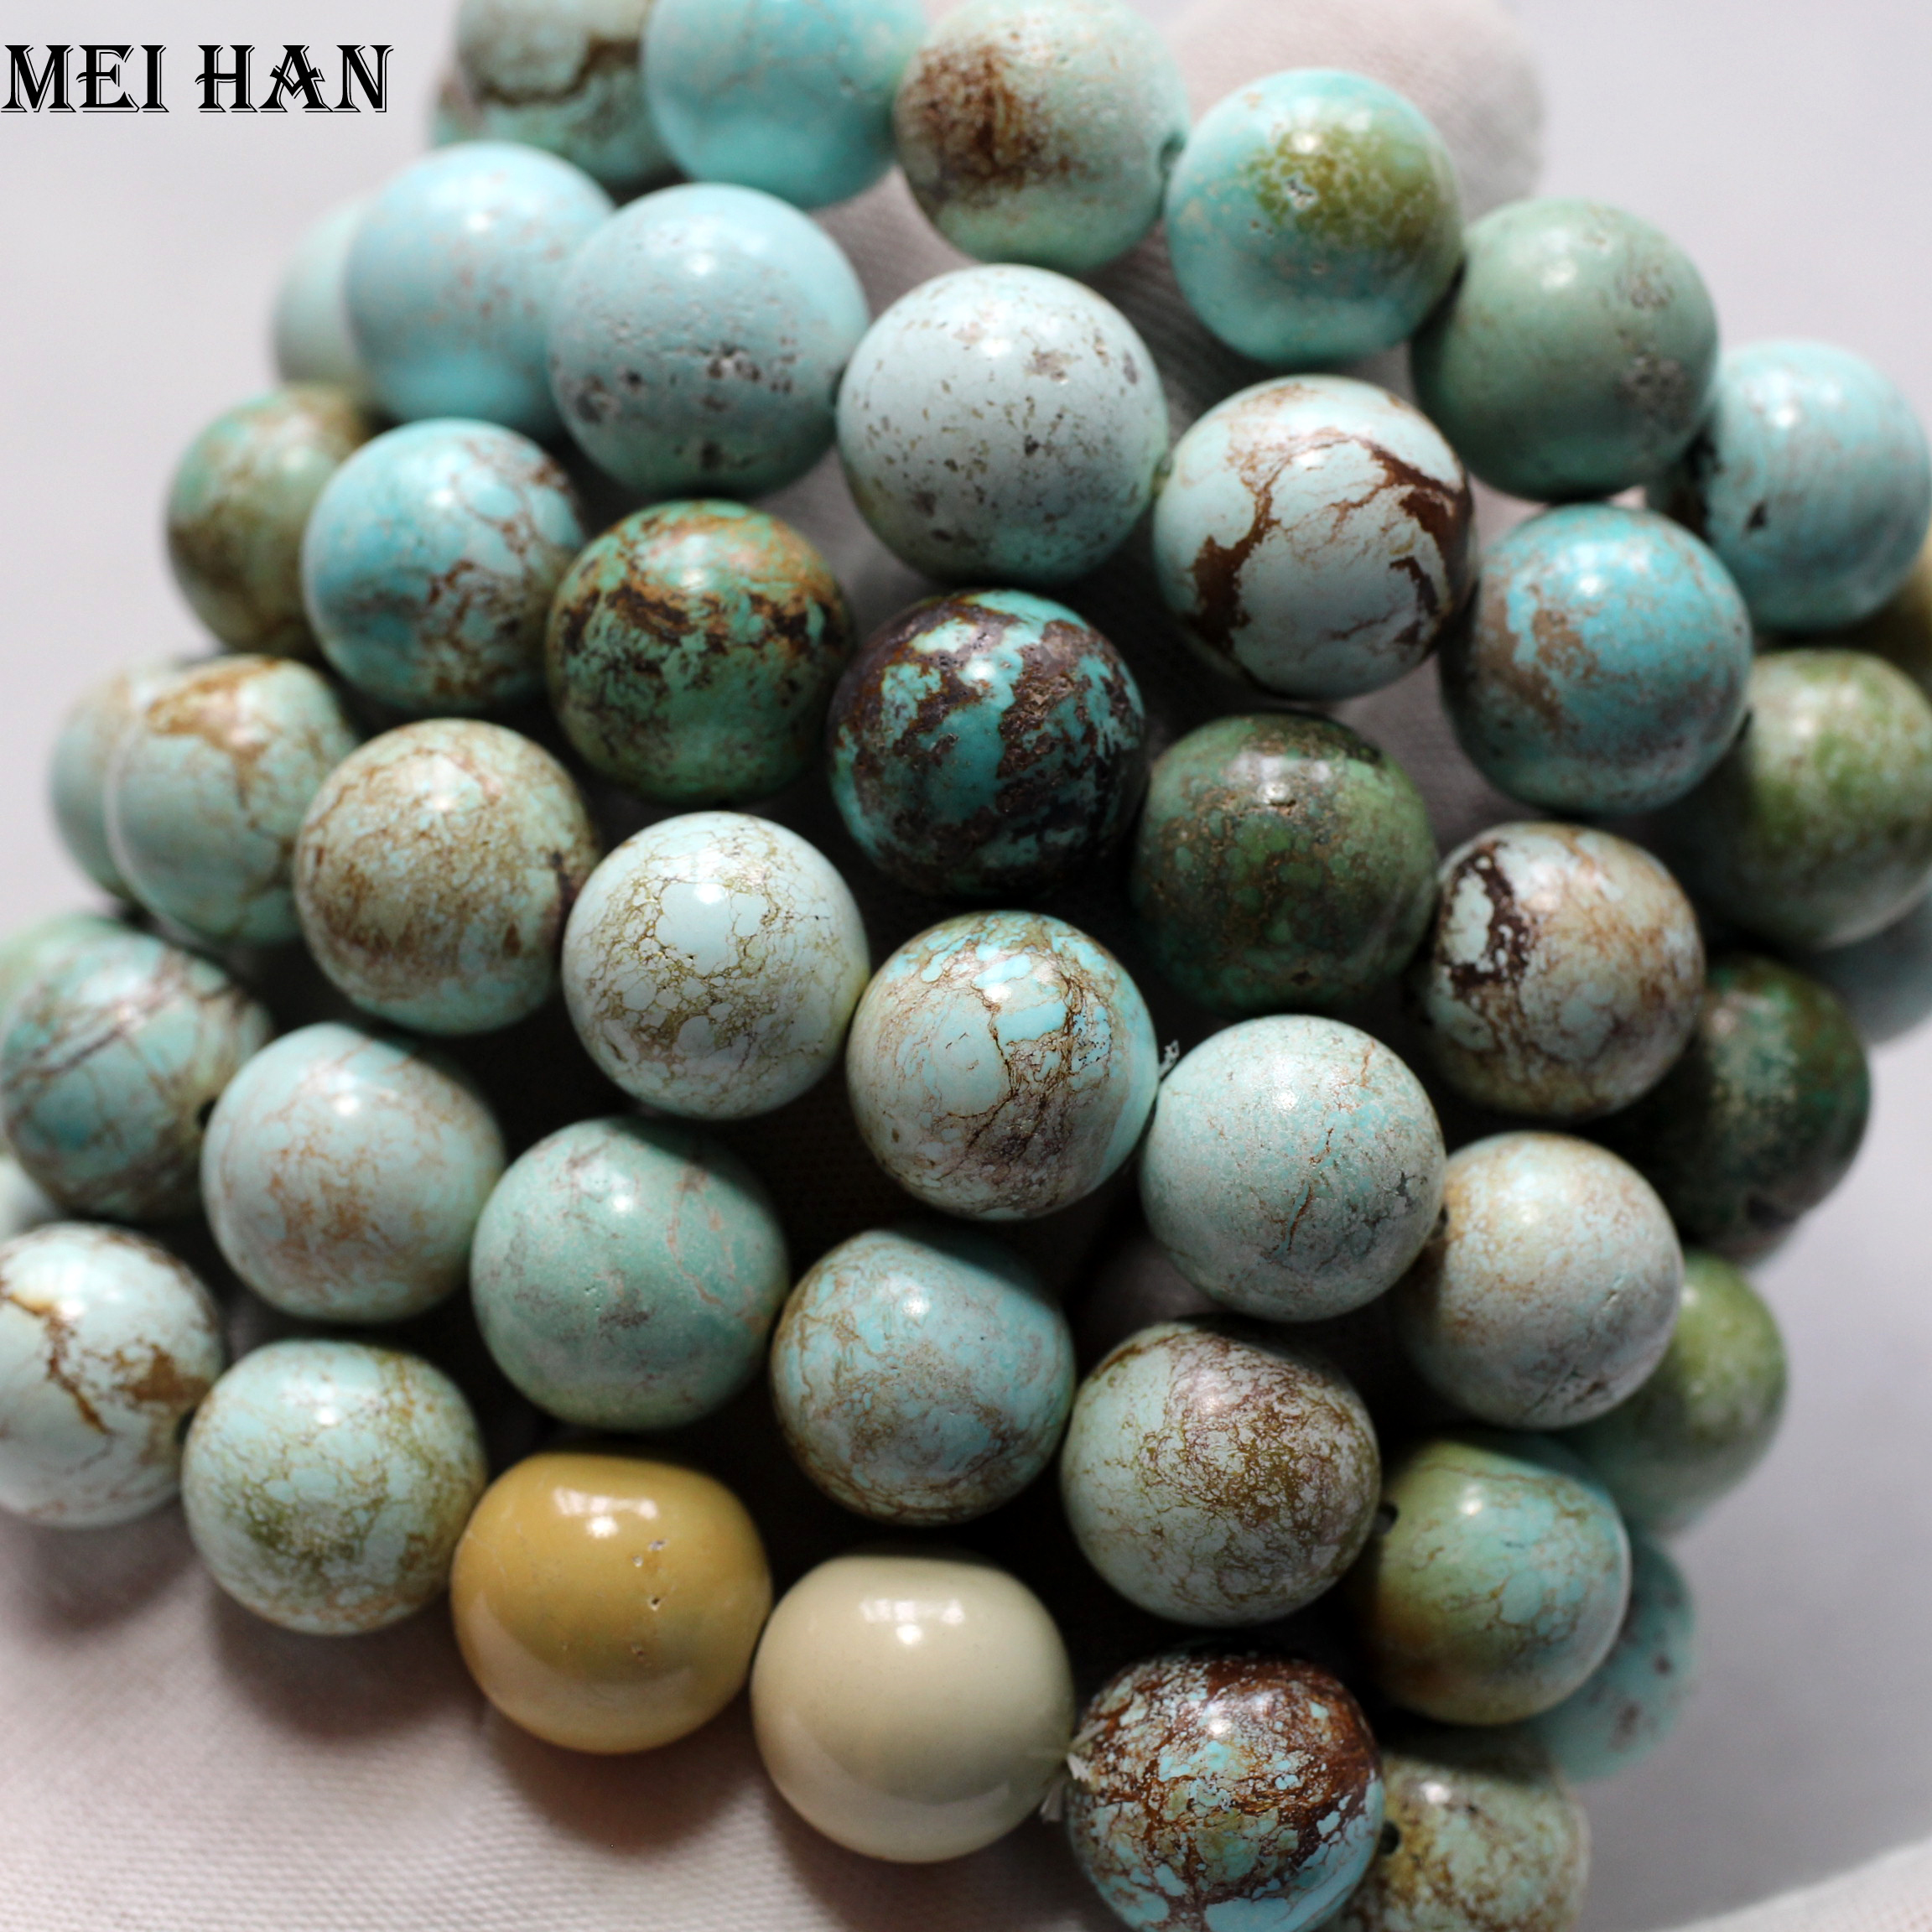 Meihan wholesale 13 13 5mm 14 beads 37g set rare Natural Hubei Turquoisee untreated ore biriuza